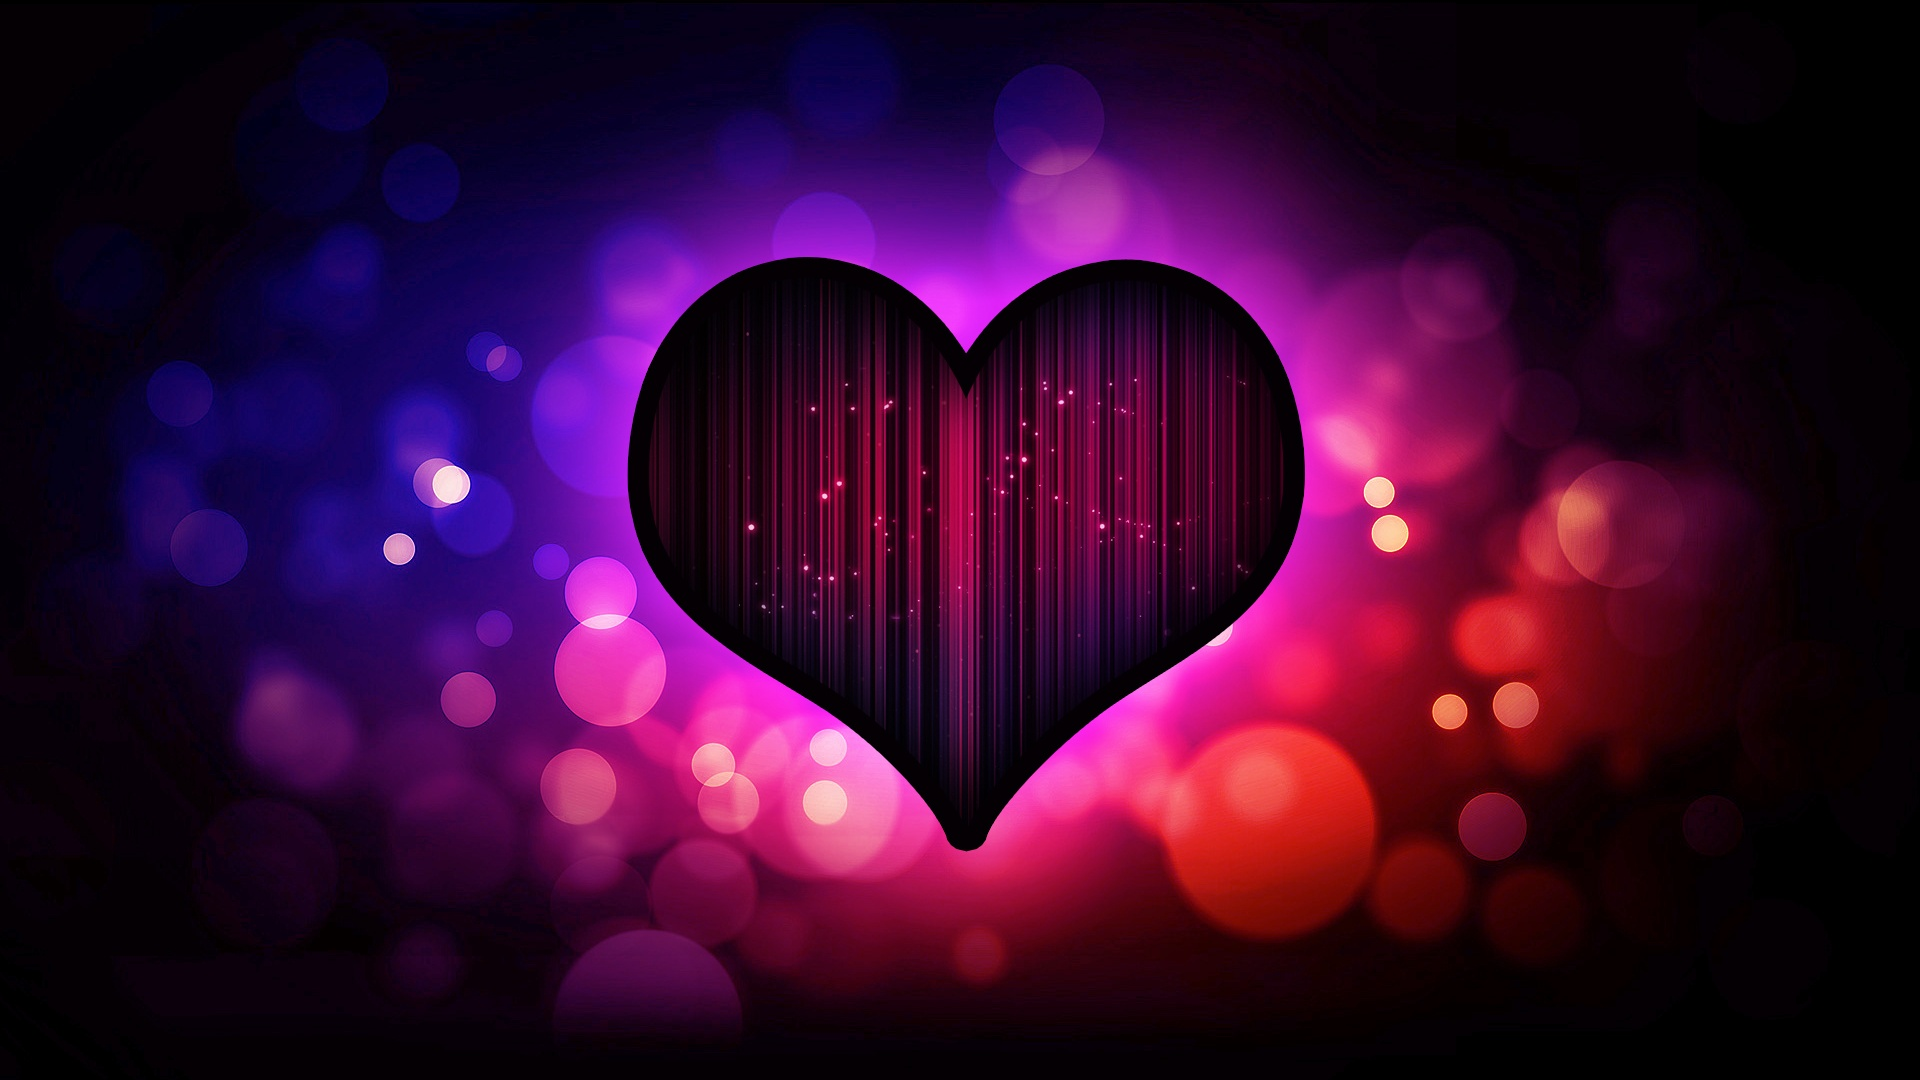 Love Wallpapers New 2014 : Abstract Love Heart Backgrounds #4266 Wallpaper ...